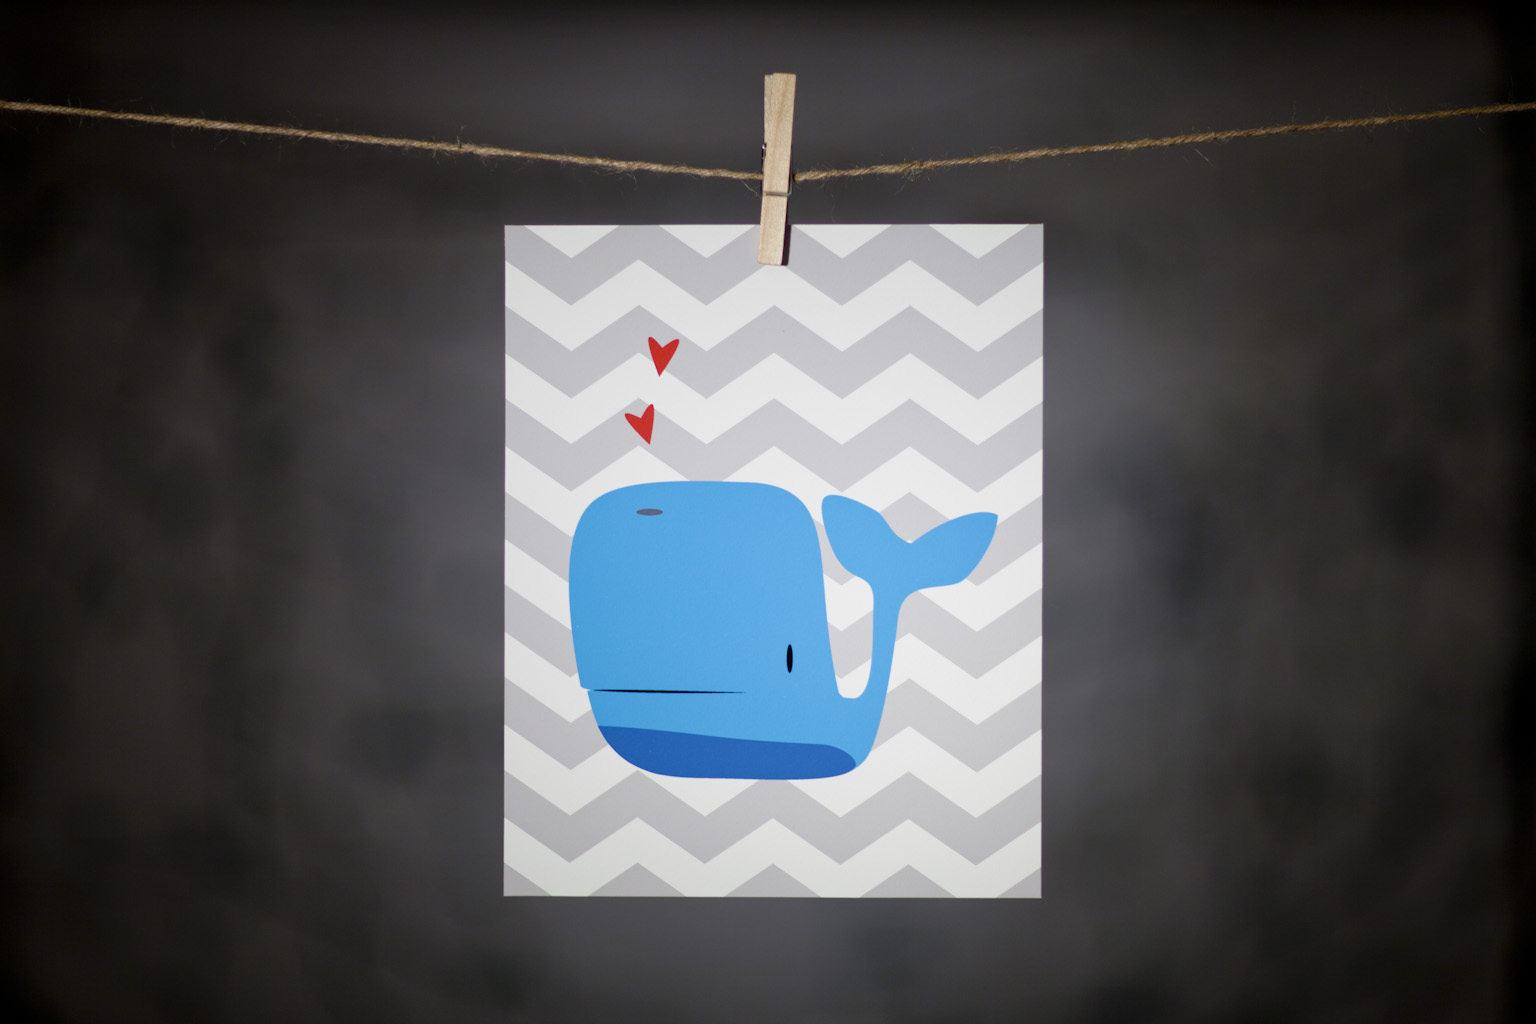 pURCHASE hEREtHIS sUPER cUTE wHALE iS sURE tO sPRUCE uP aNY kID'S rOOM oR nURSERY. iT iS aN oRIGINAL dOODLEgIRL 8 x 10{quote} iLLUSTRATION tHAT iS pRINTED oN aCID fREE vELVET aRT pAPER wITH a mATTE fINISH. tHIS wHALE iS aCCOMPANIED bY a LiGHT gREY cHEVRON bACKGROUND.cHECK oUT mY sHOP fOR oTHER iLLUSTRATED pRINTS tHAT cOMPLIMENT tHIS oNE. iF yOU pLAN oN bUYING mULTIPLE pRINTS, pLEASE cHECK oUT tHE LiSTING fOR tHREE pRINTS aND yOU wILL sAVE a fEW bUCKS!cRAFTED + pRINTED iN bOULDER, cOLORADO, uSA.